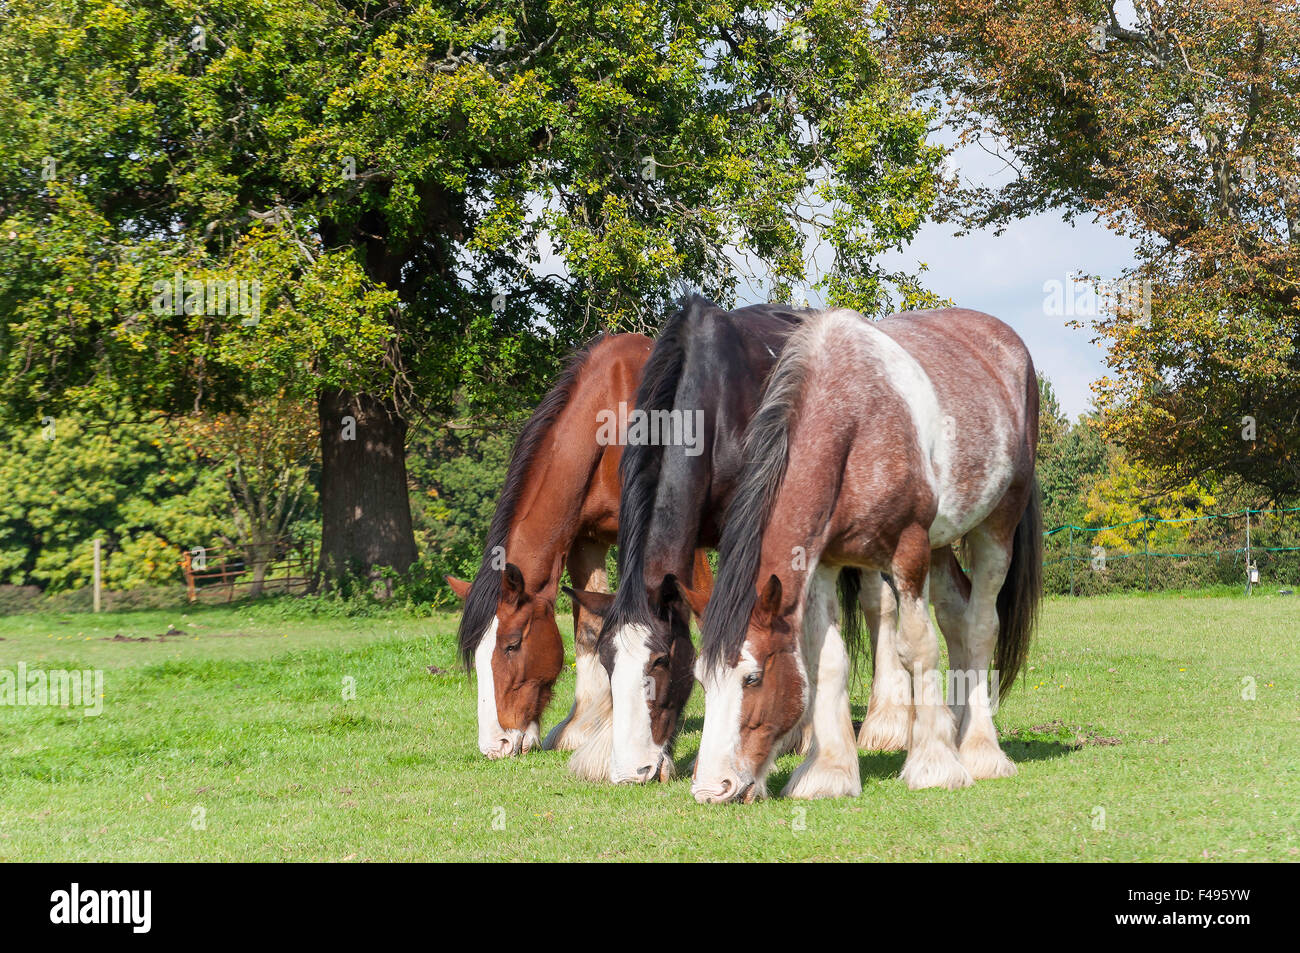 Draught horses at Chiltern Open Air Museum, Newland Park, Chalfont St Giles, Buckinghamshire, England, United Kingdom - Stock Image